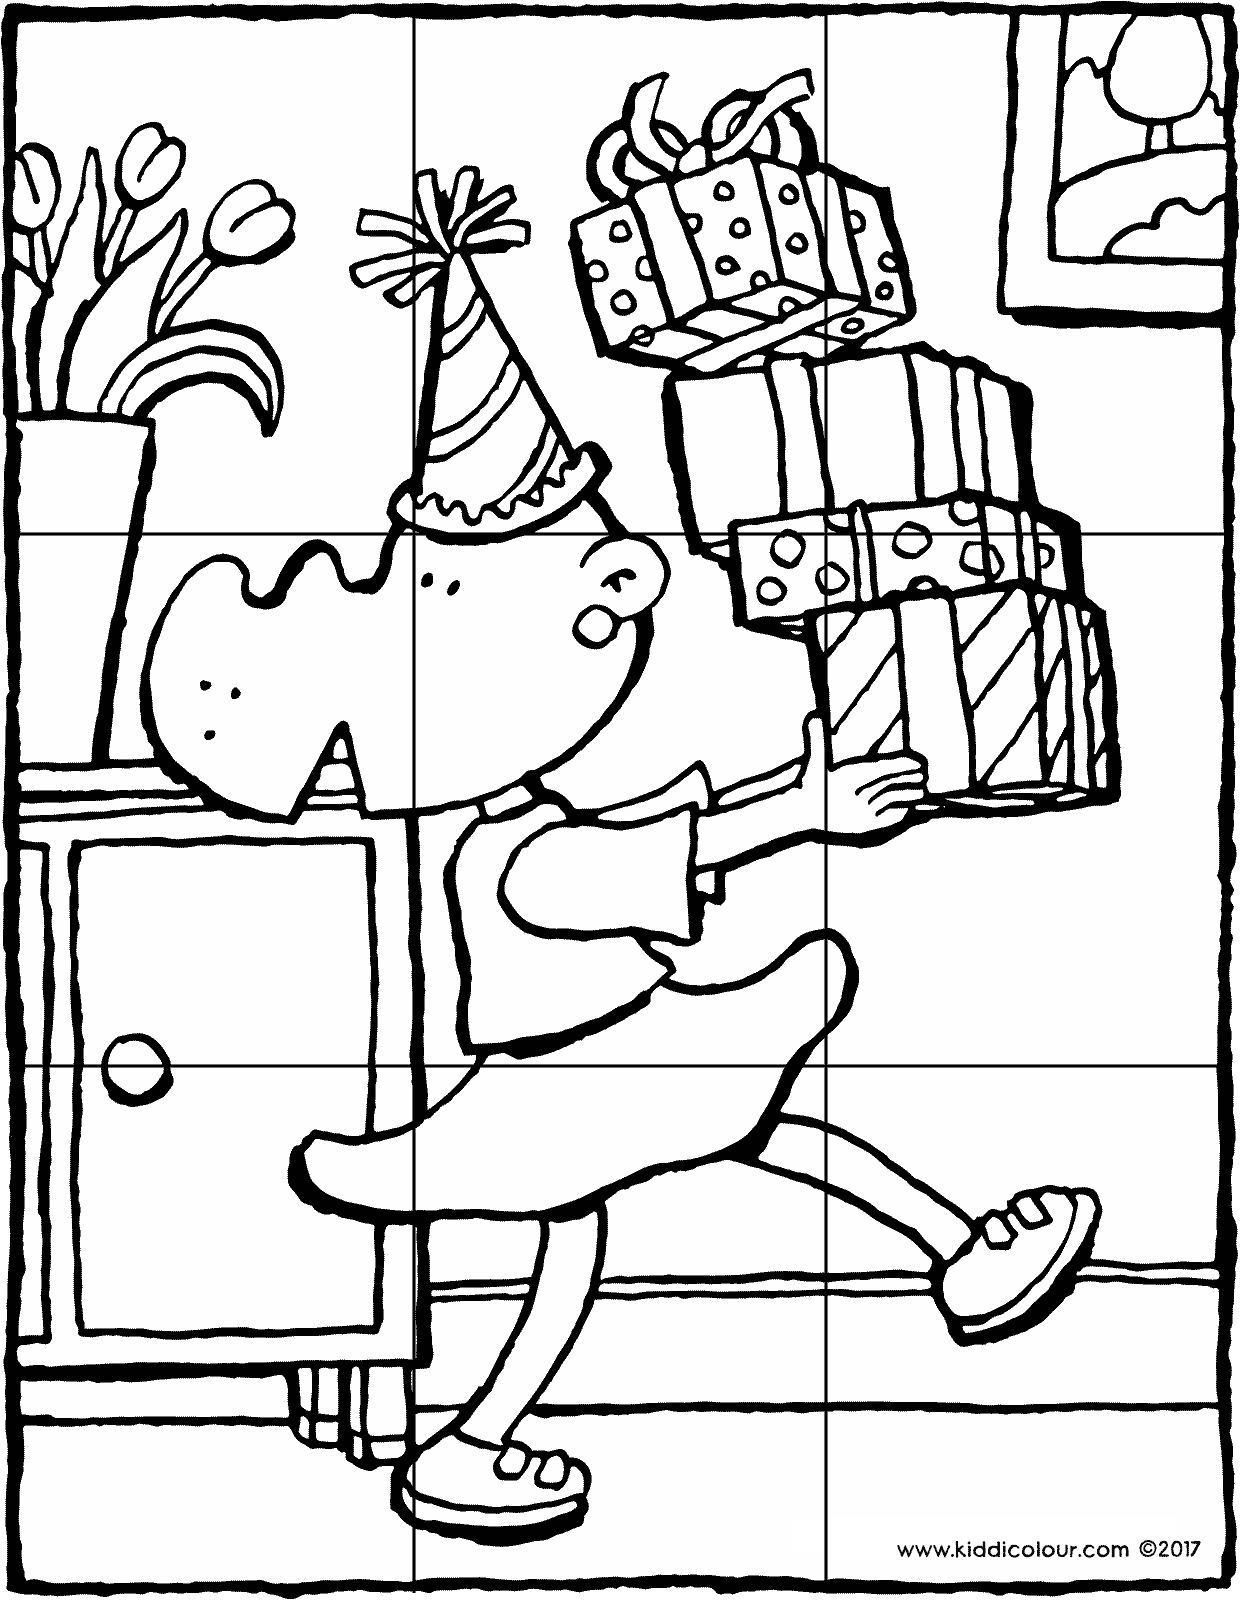 birthday with presents puzzle colouring page drawing picture 9V